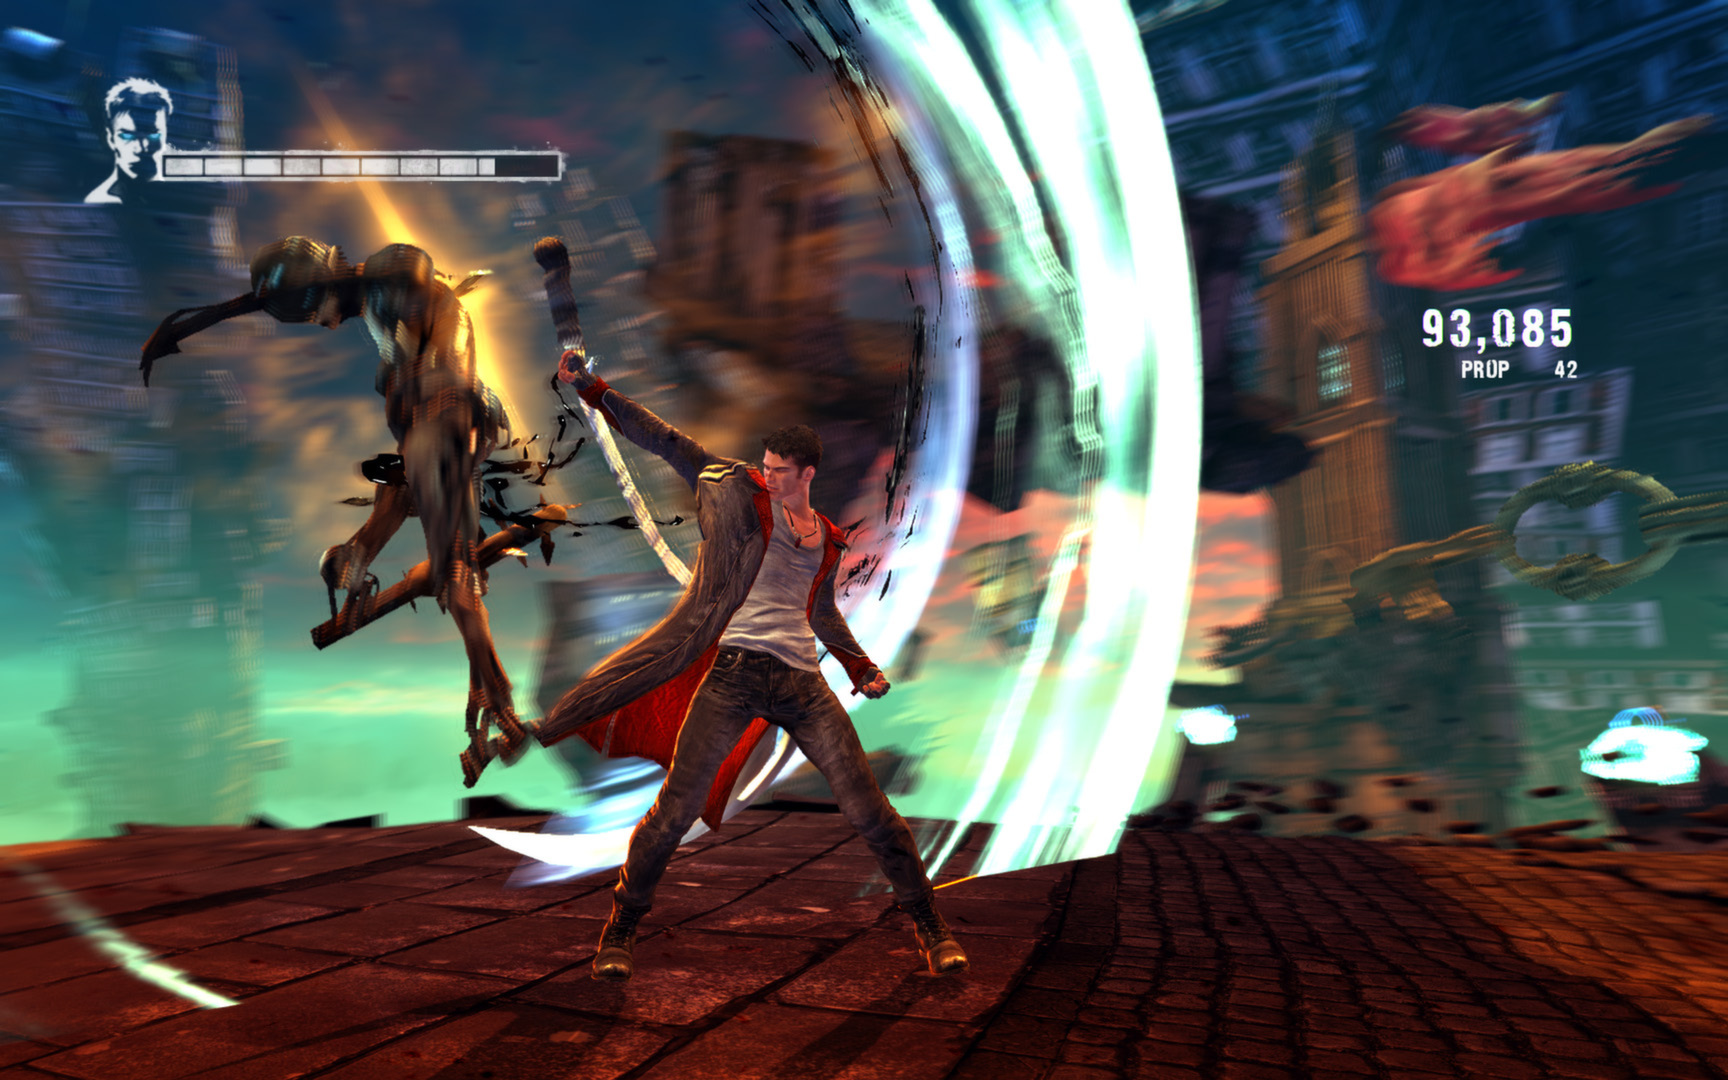 Download DmC Devil May Cry Complete Edition Repack by CorePack Full Version